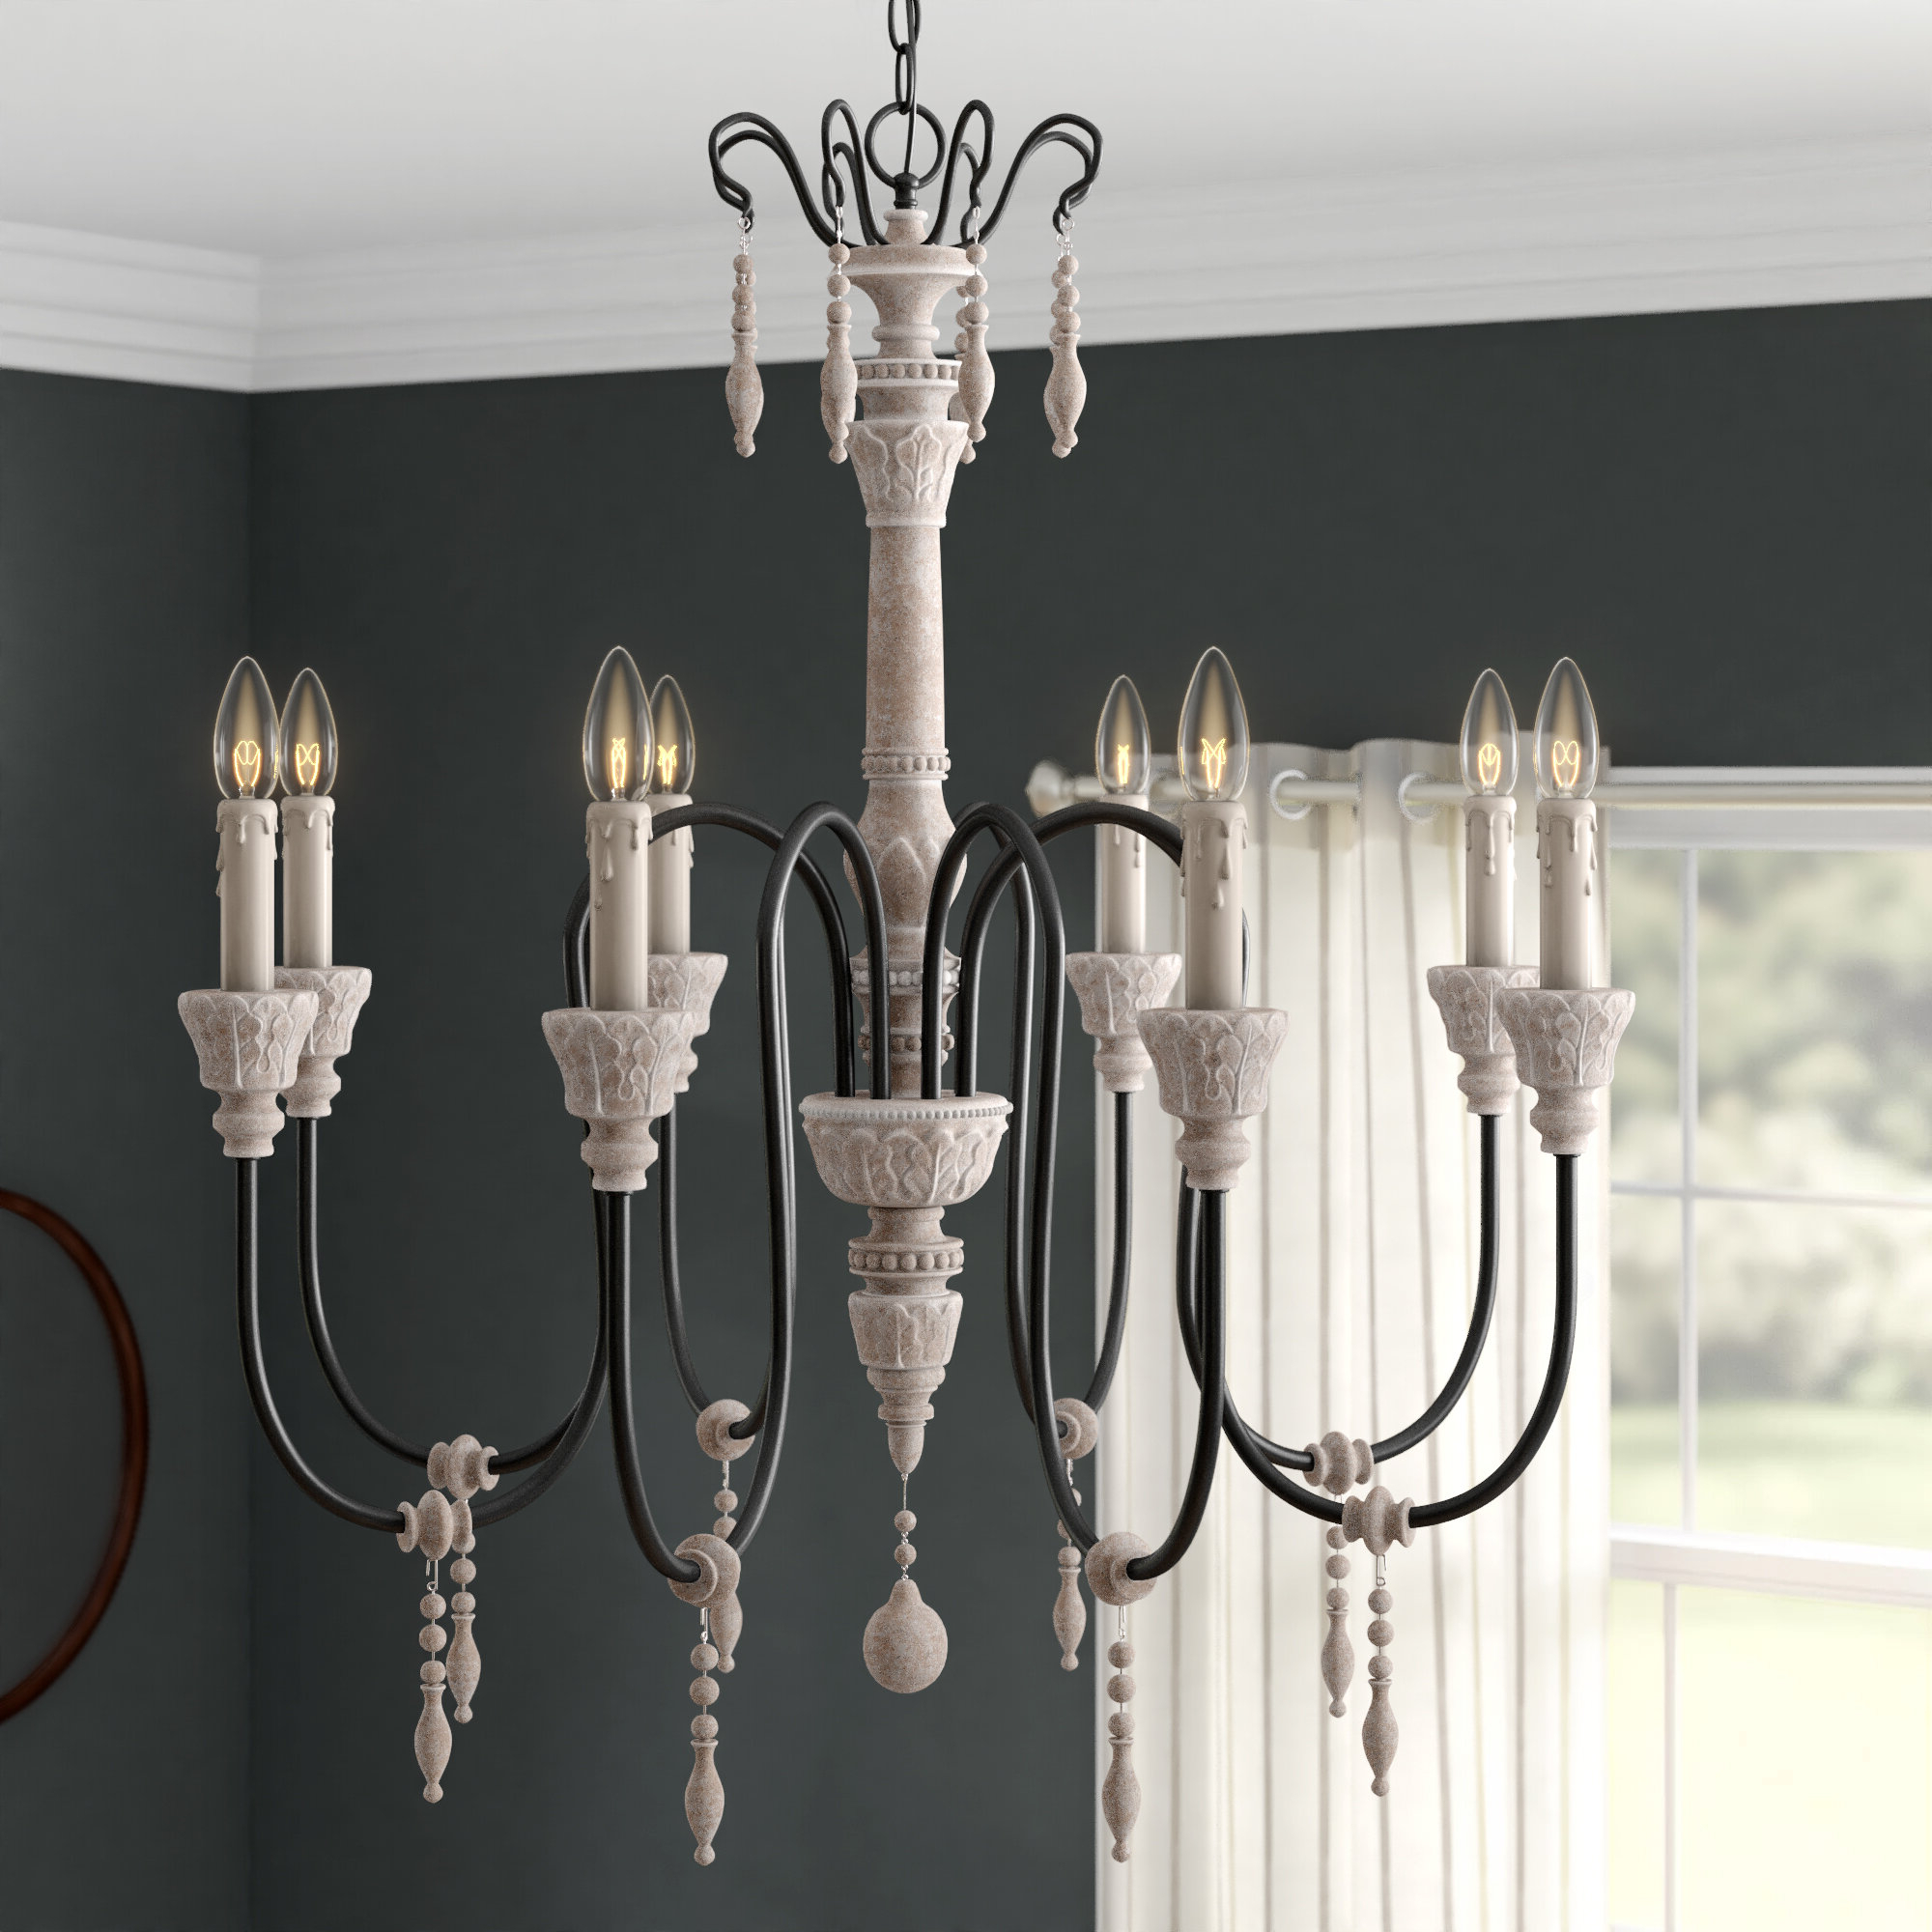 Newest Oriana 4 Light Single Geometric Chandeliers With Ailsa 8 Light Candle Style Chandelier (View 10 of 20)